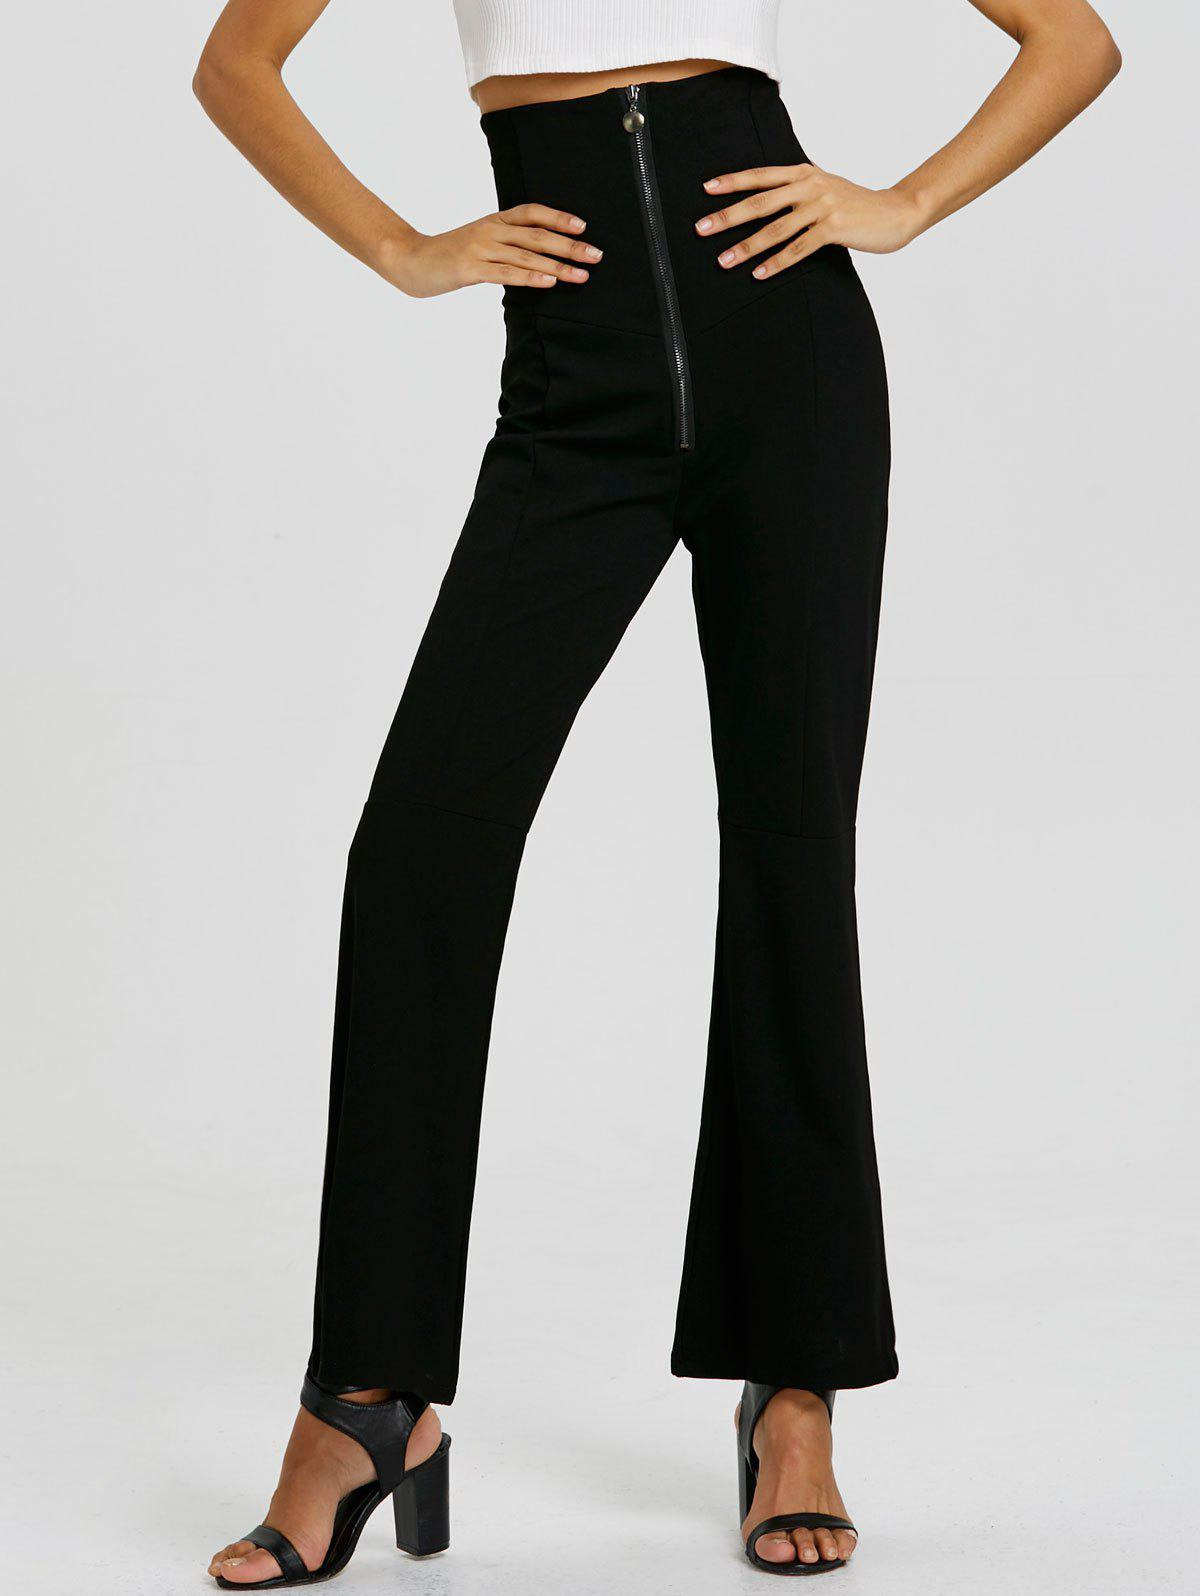 Zip Up Corset Boot Cut Flare Pants - BLACK L